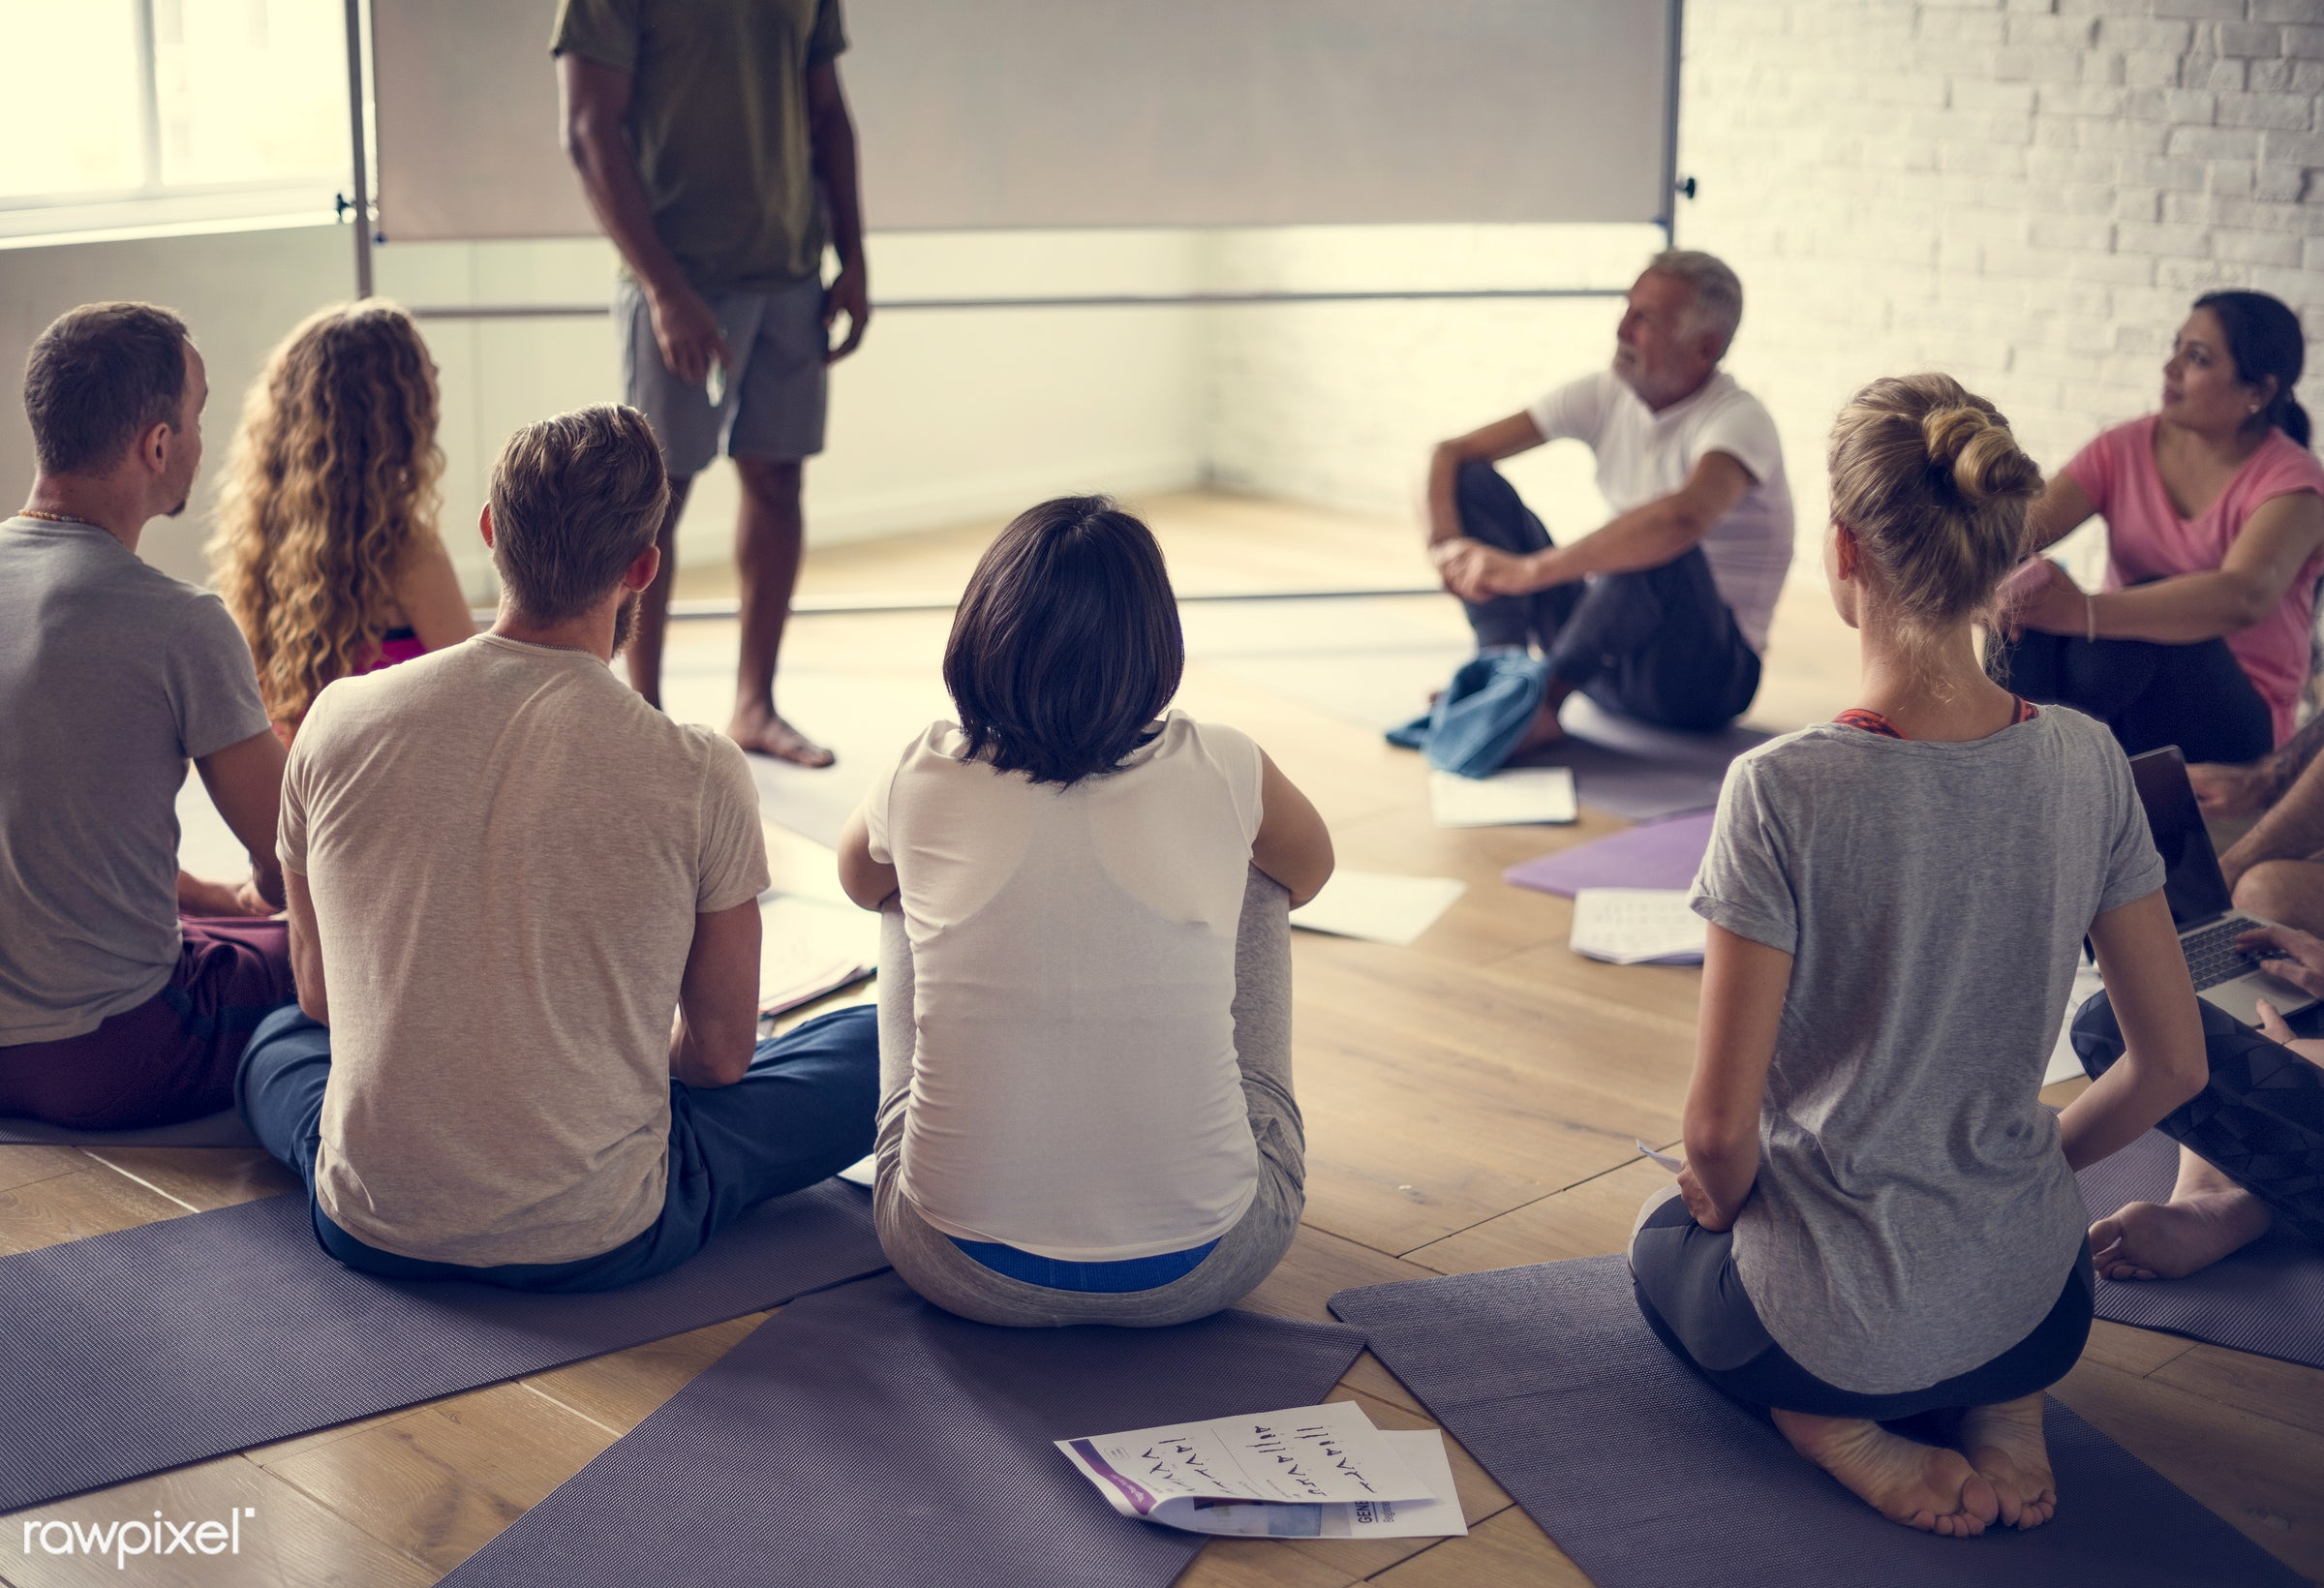 respiration, physical, diverse, relax, recreation, stretching, people, together, balance, practicing, lifestyle, flexibility...